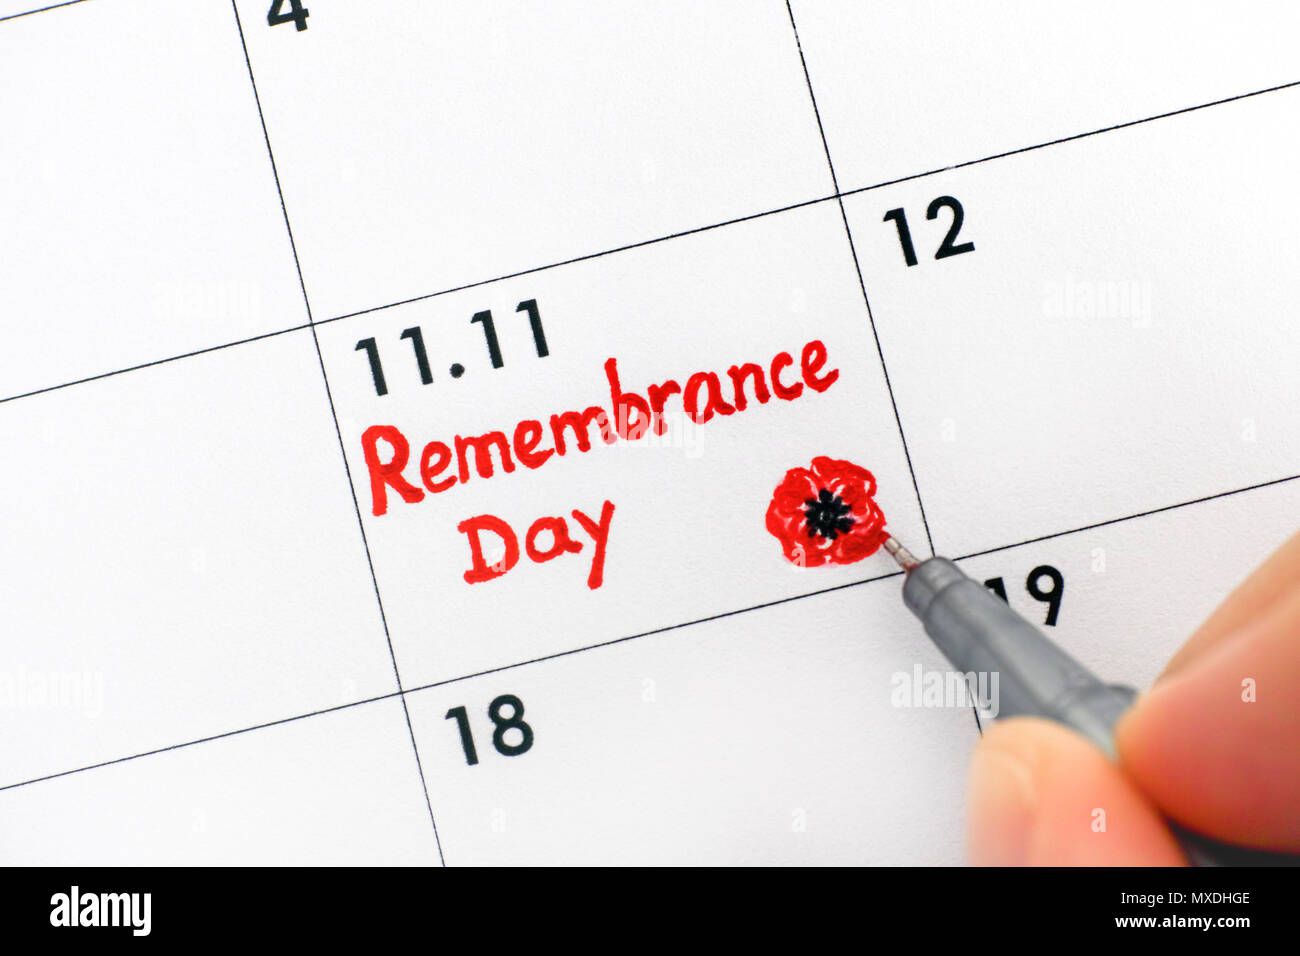 Woman fingers with pen writing reminder Remembrance Day in calendar. Close-up. - Stock Image